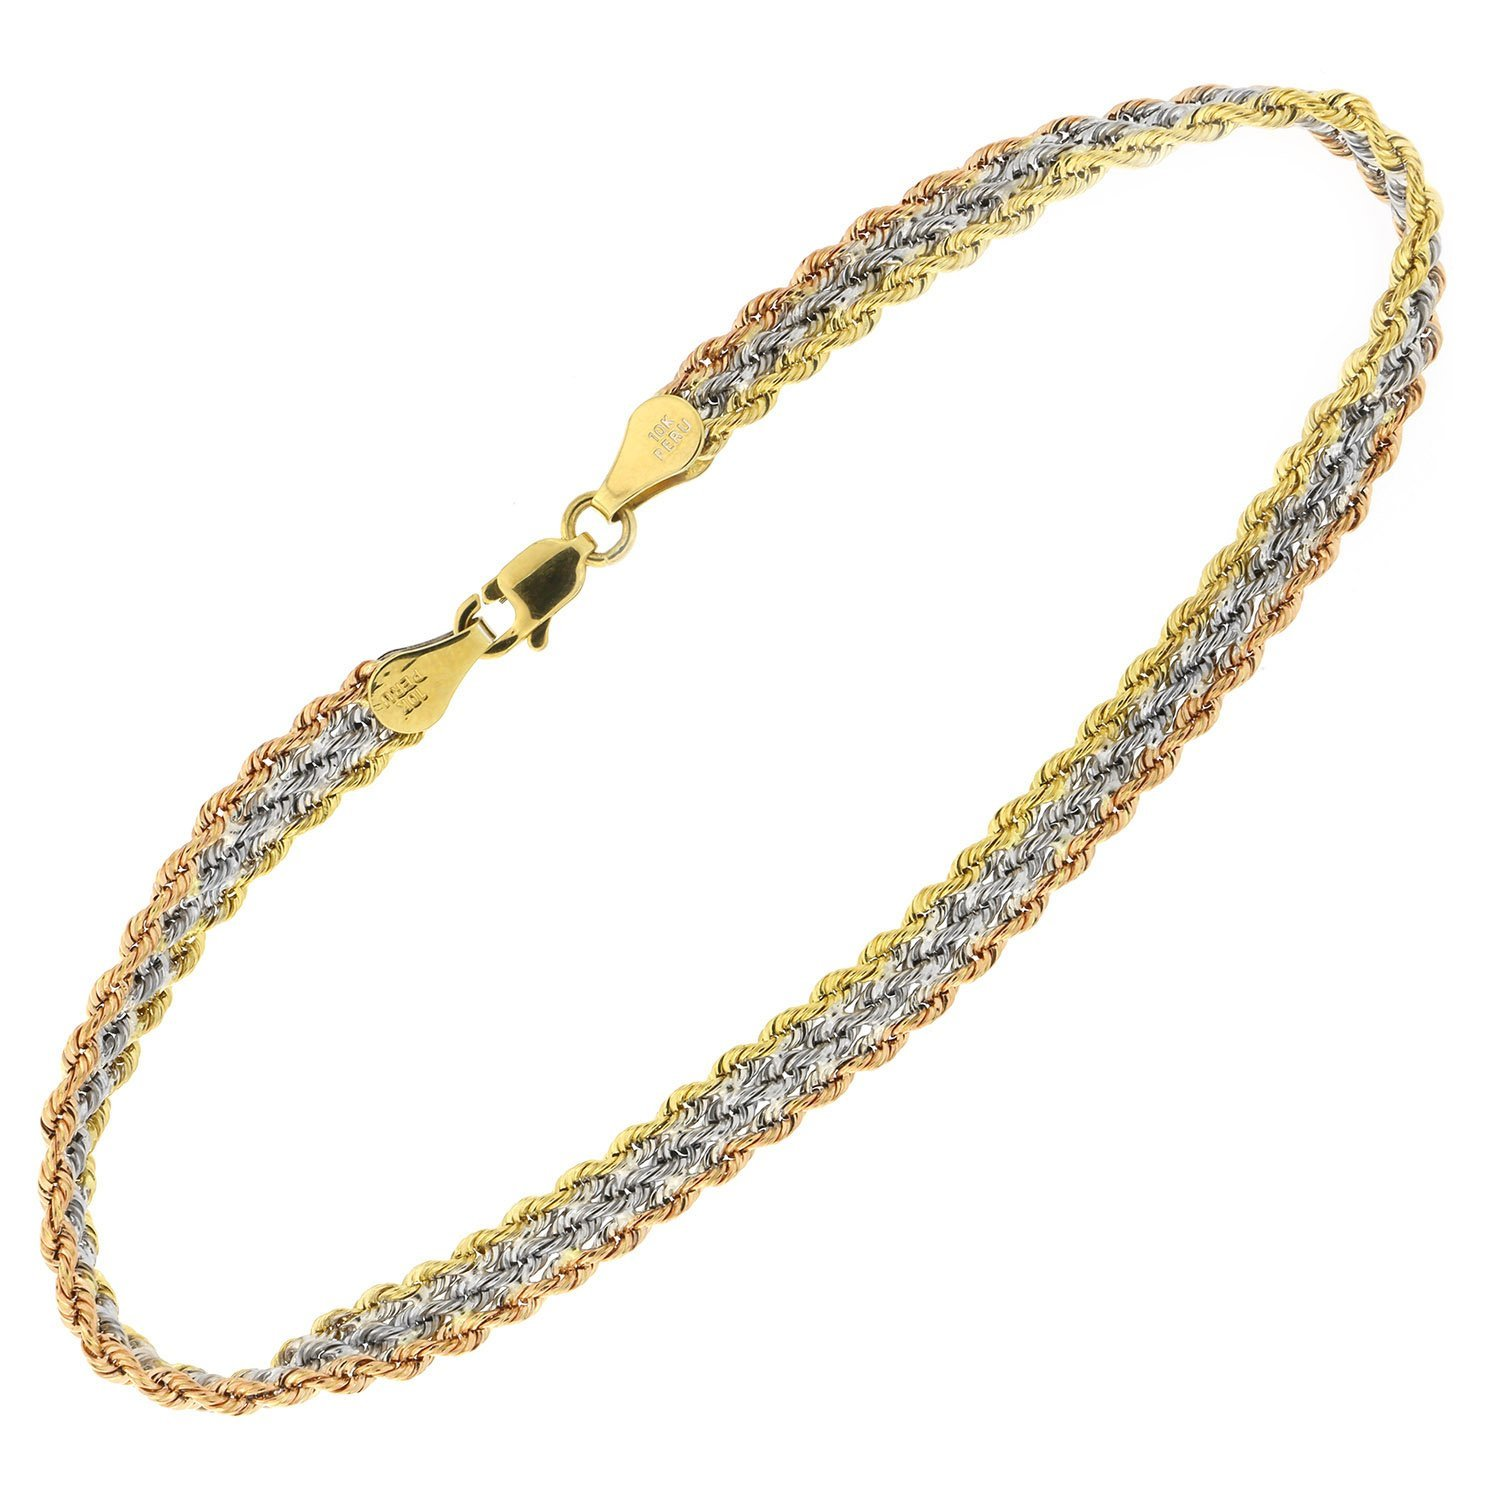 10K Yellow+White+Rose Gold Triple Strand Rope Chain Ladies Fancy Bracelet with Lobster Clasp- 7.5